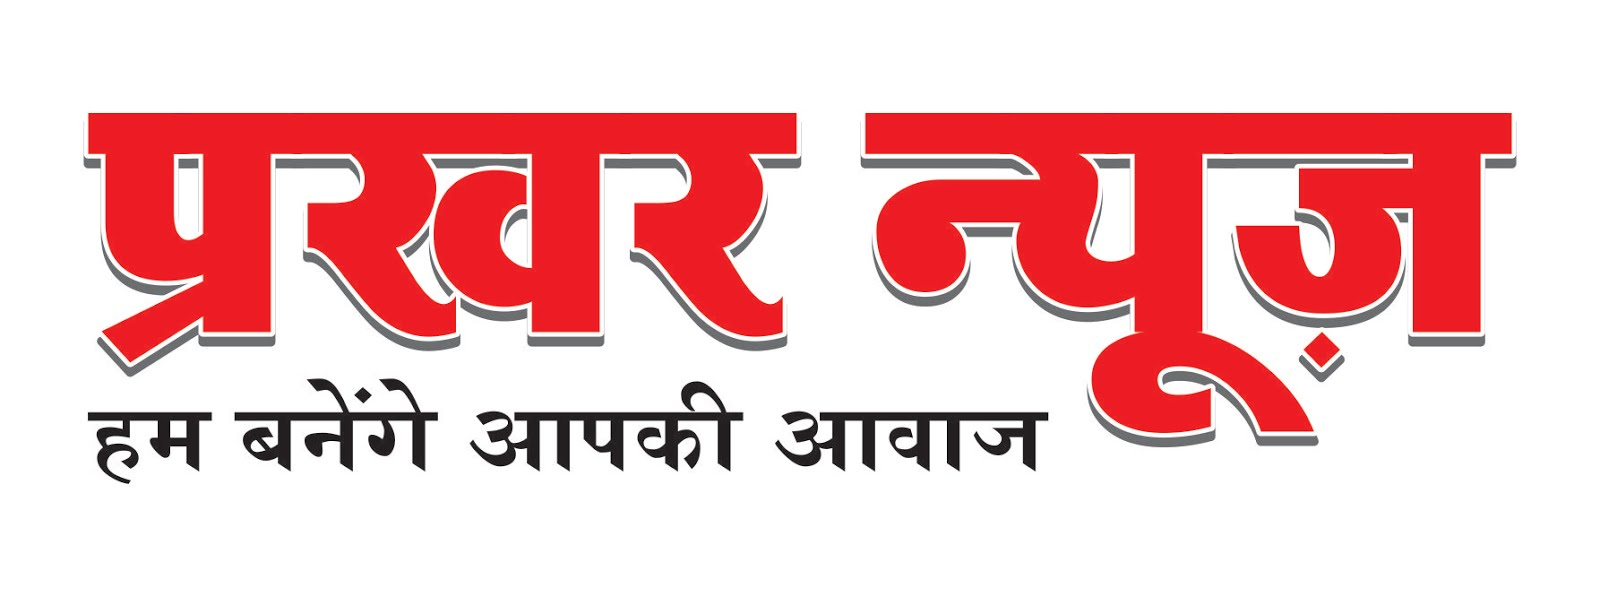 Prakhar News